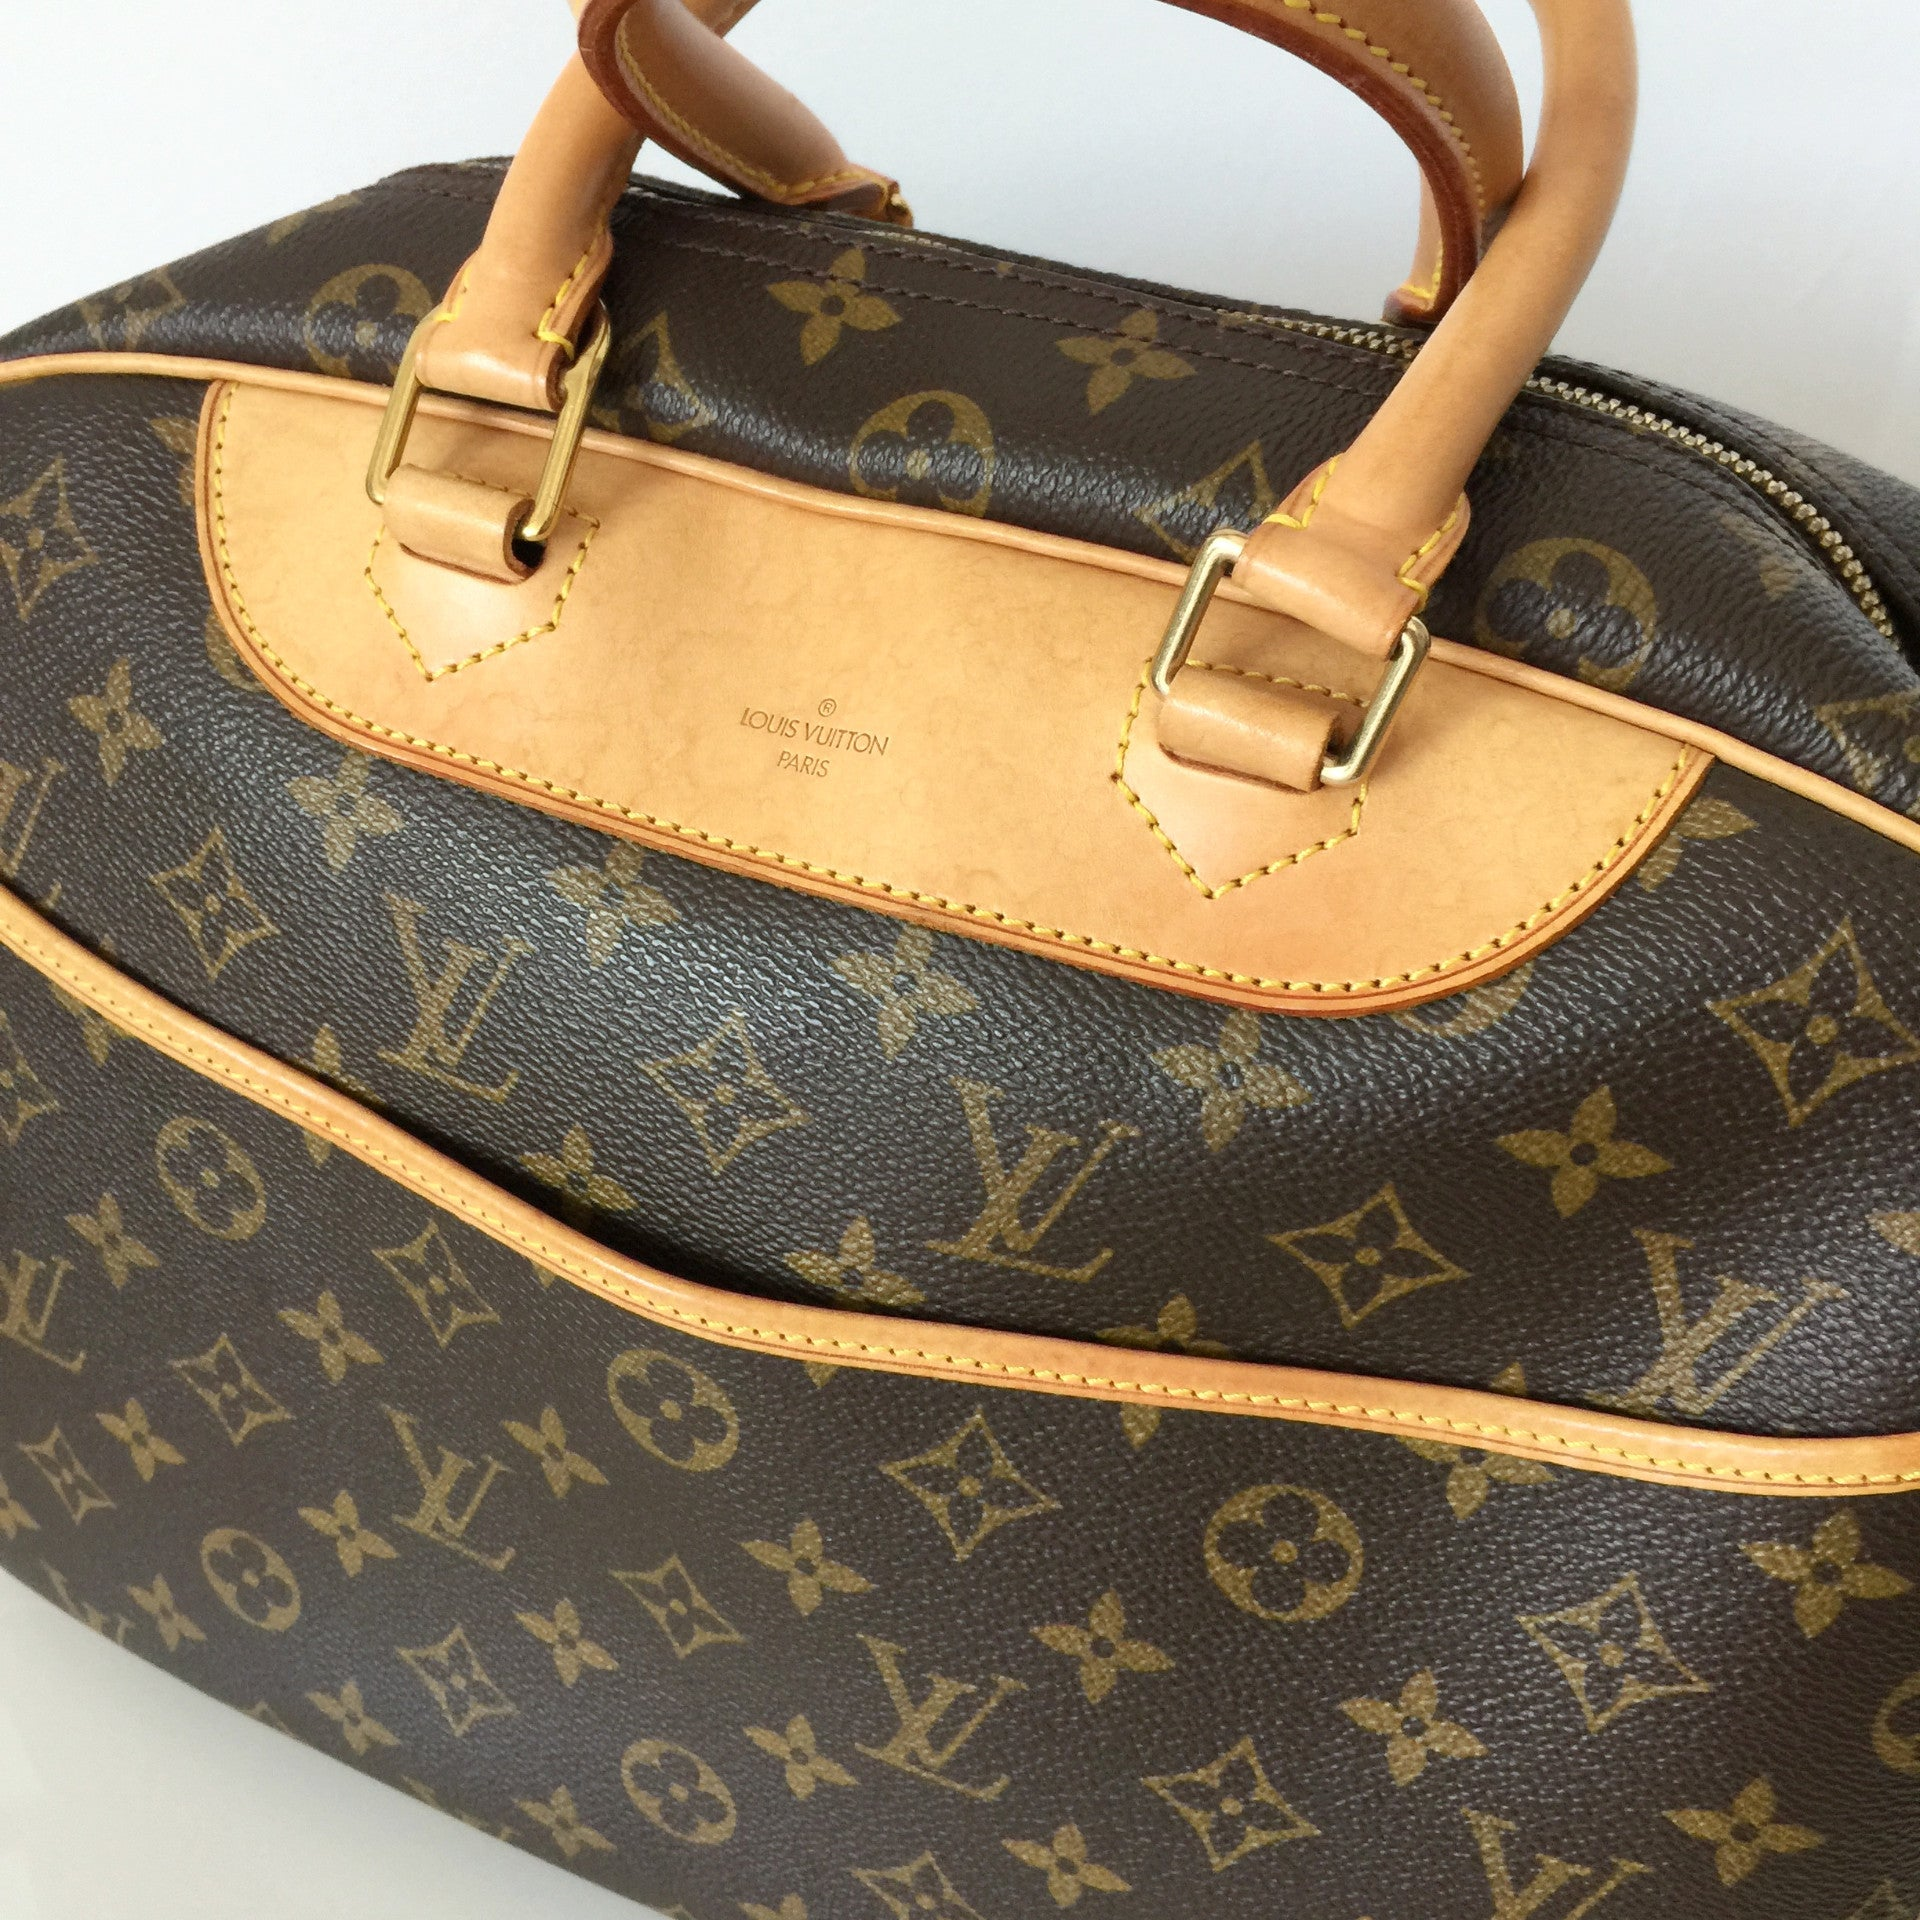 Authentic LOUIS VUITTON Deauville Monogram Bag